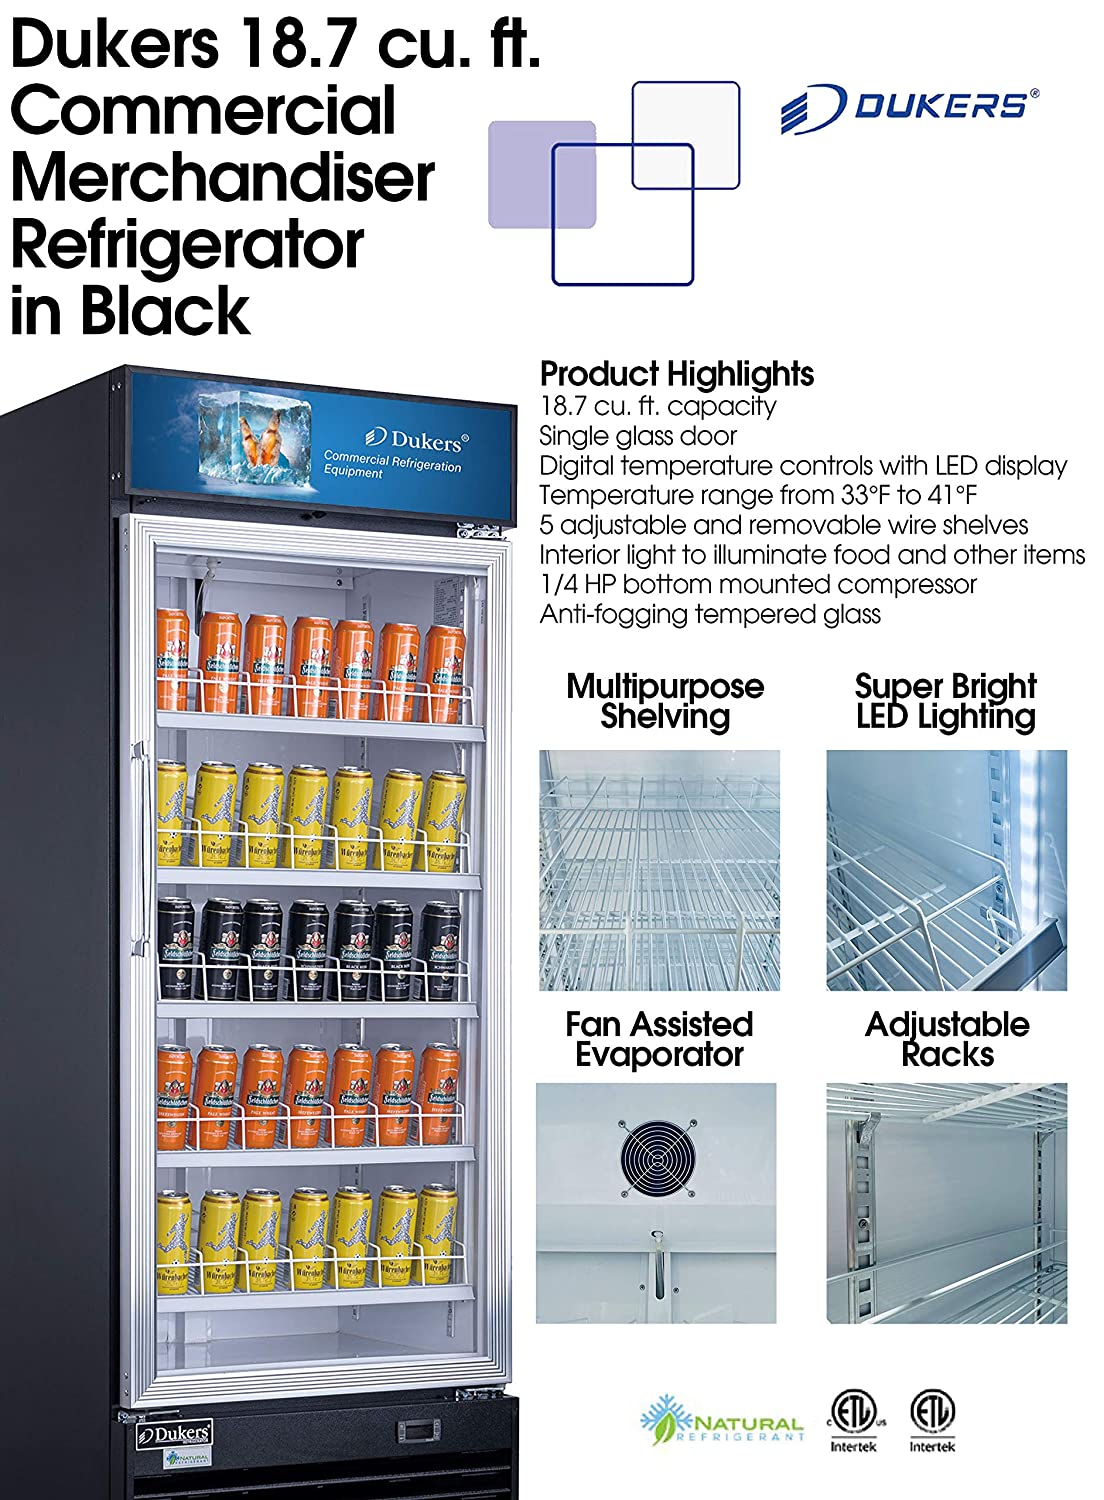 Dukers DSM-19R 18.7 cu. ft. Commercial Display Cooler Merchandiser Refrigerator